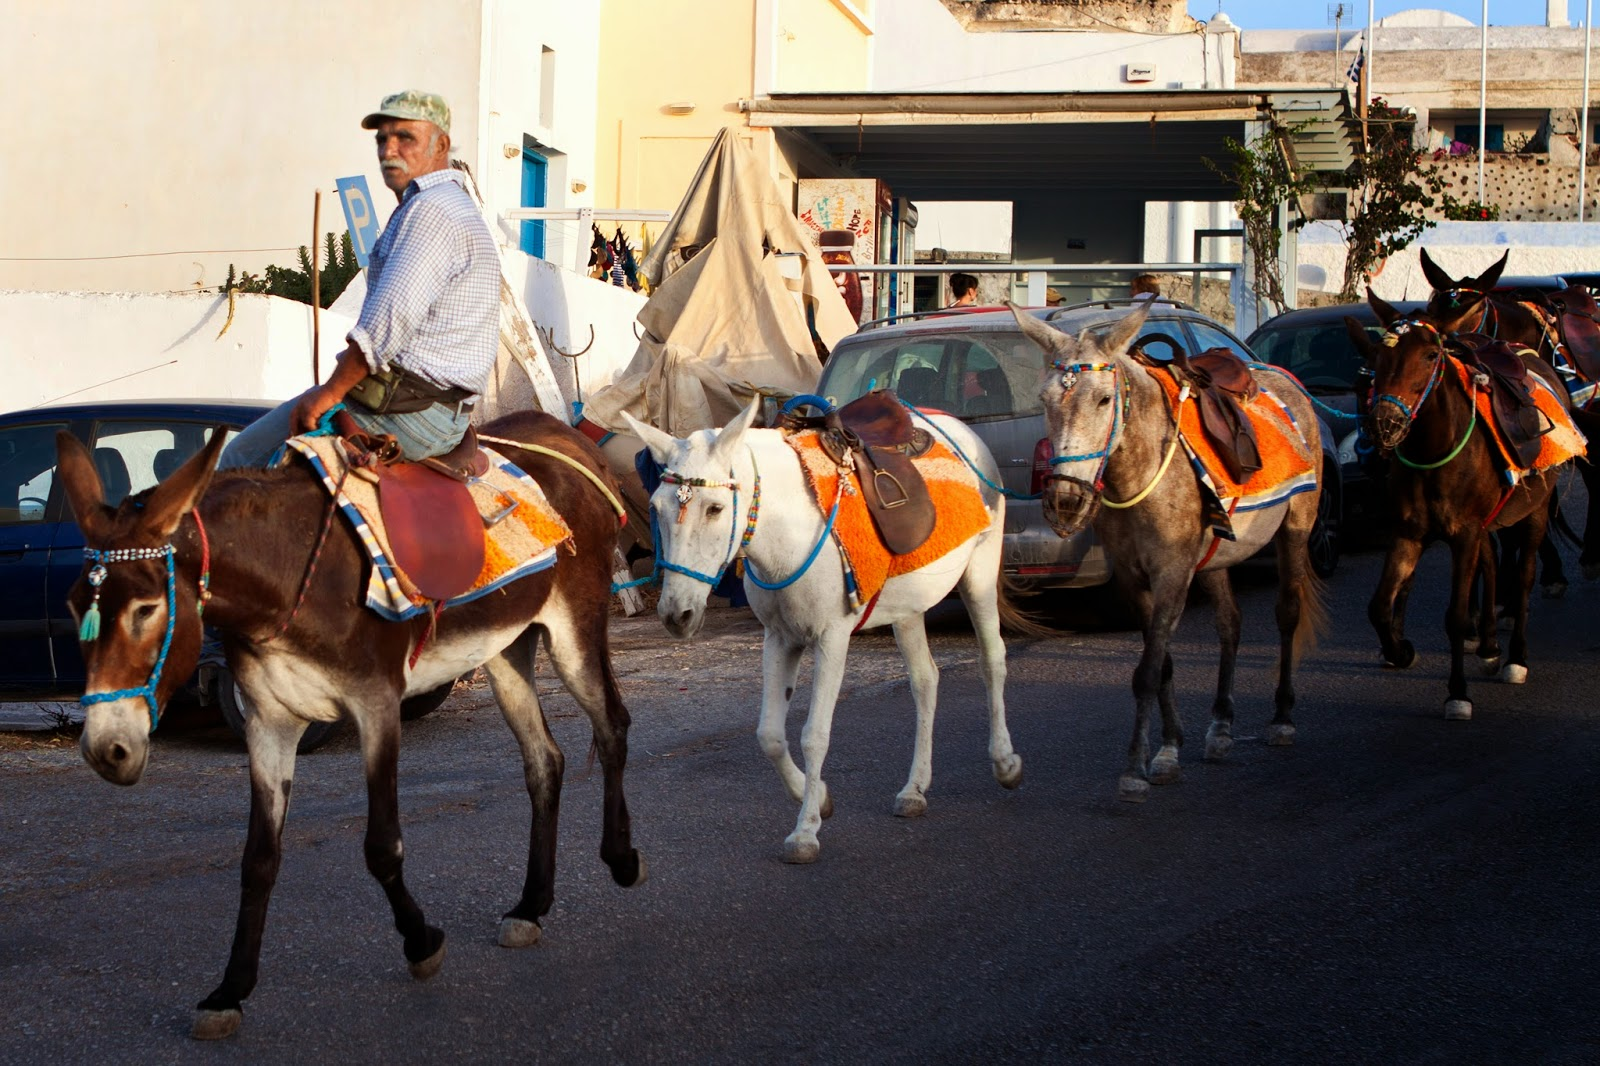 (local man and his horses in Oia)